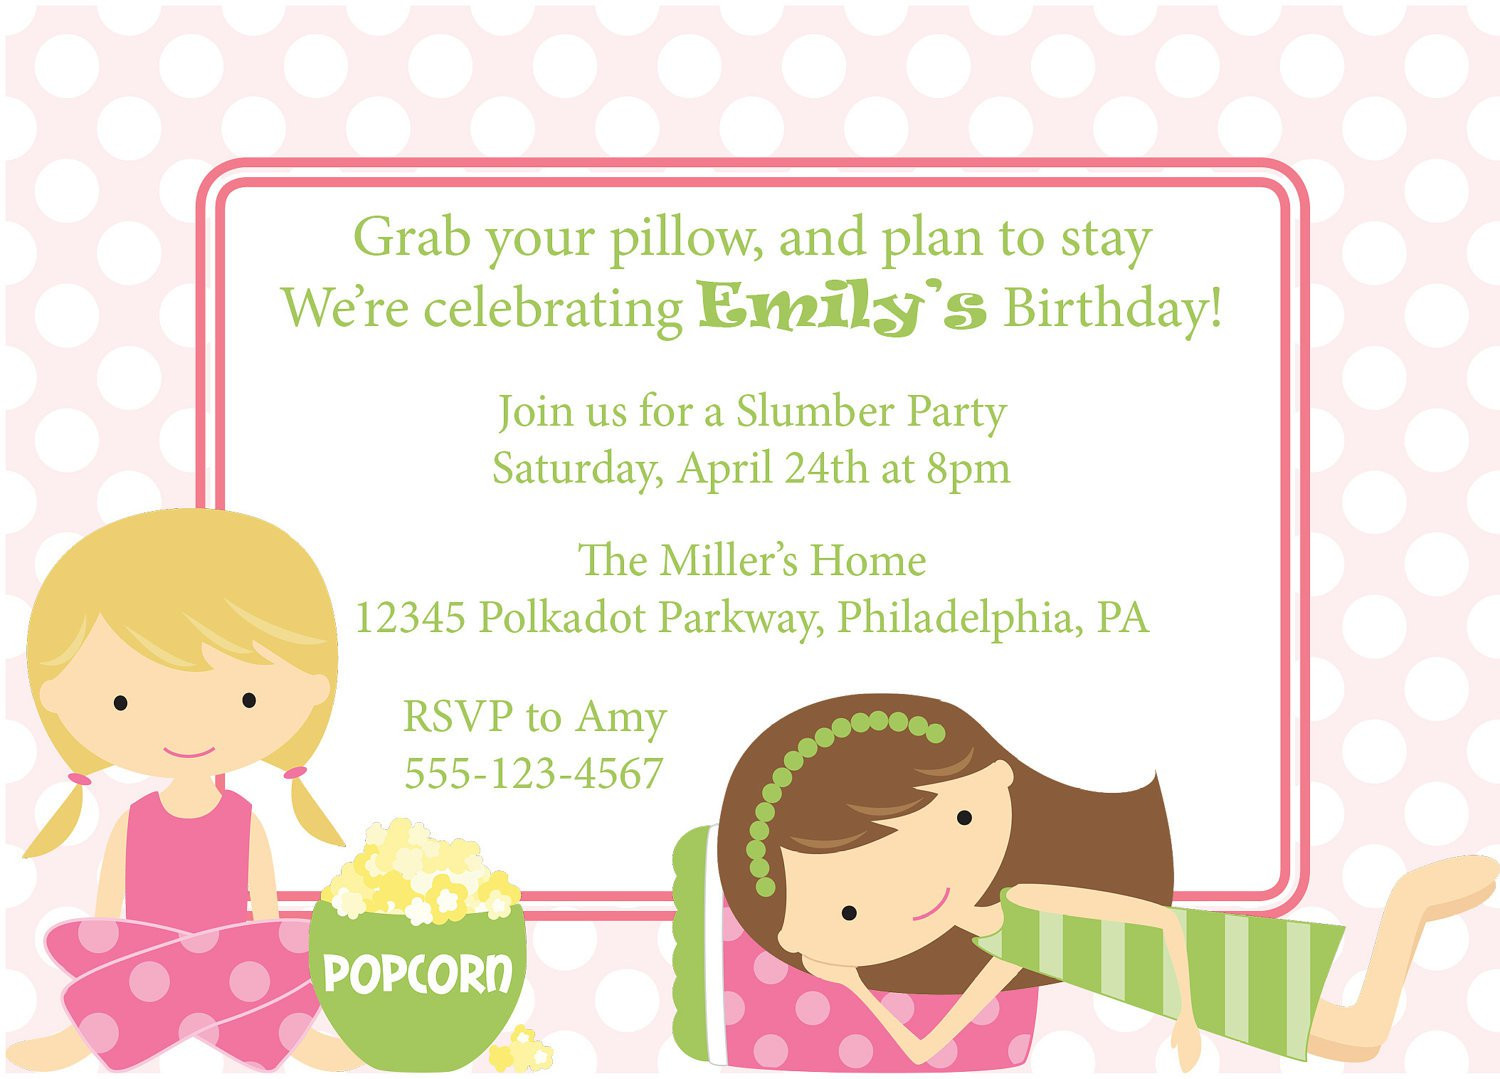 Best ideas about Sleepover Birthday Party . Save or Pin Sleepover Party Invitations Party XYZ Now.